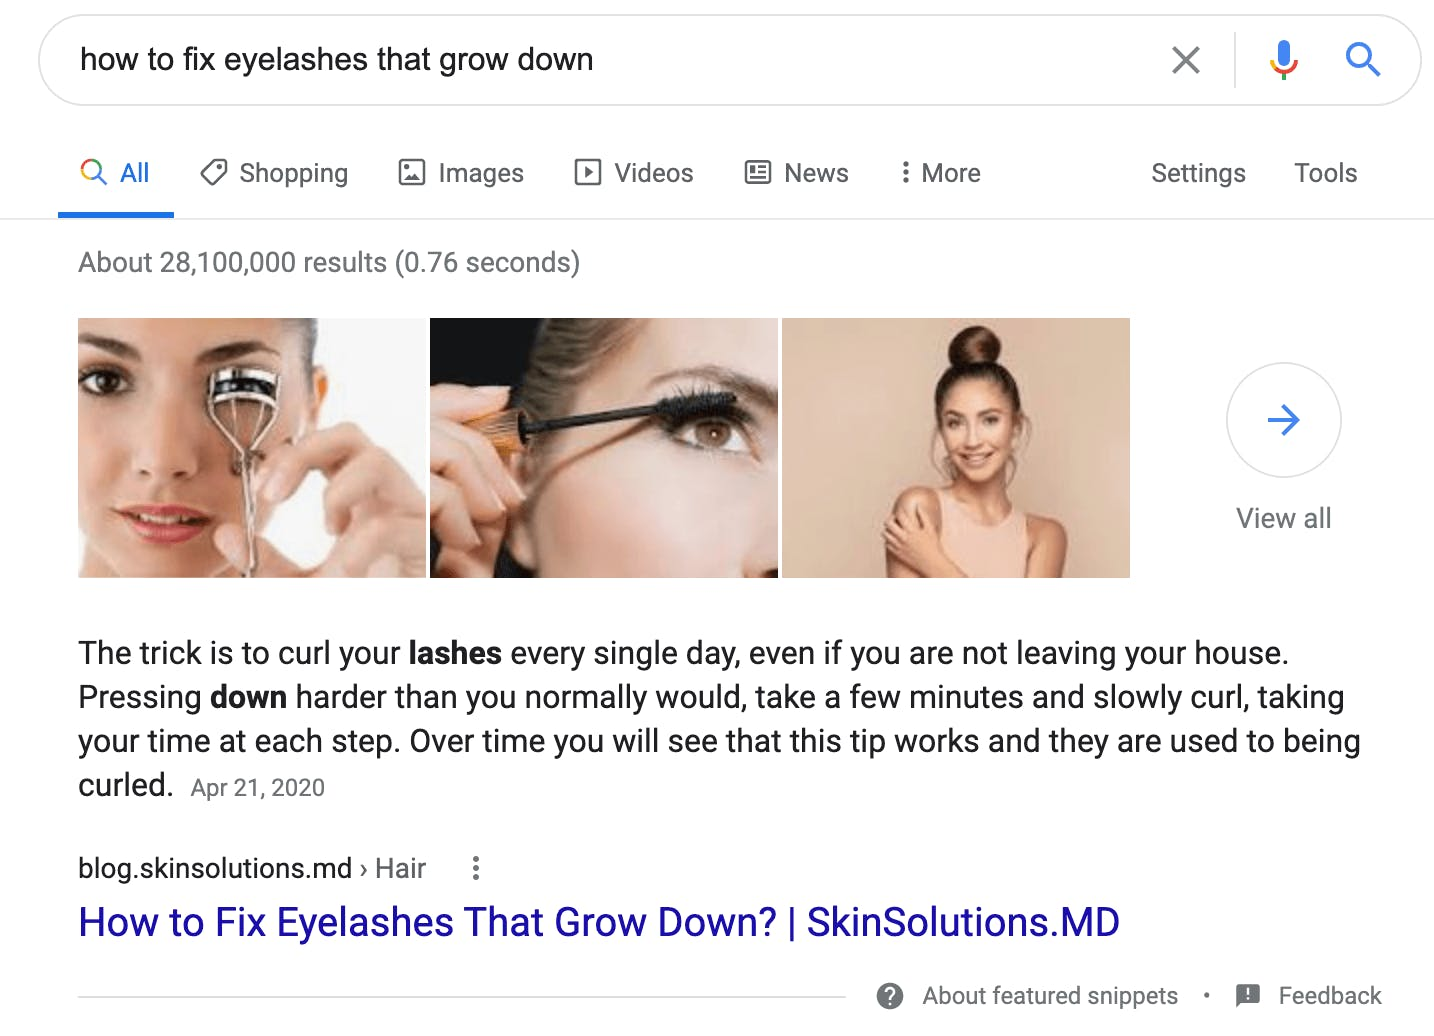 skinsolutions.md featured snippet